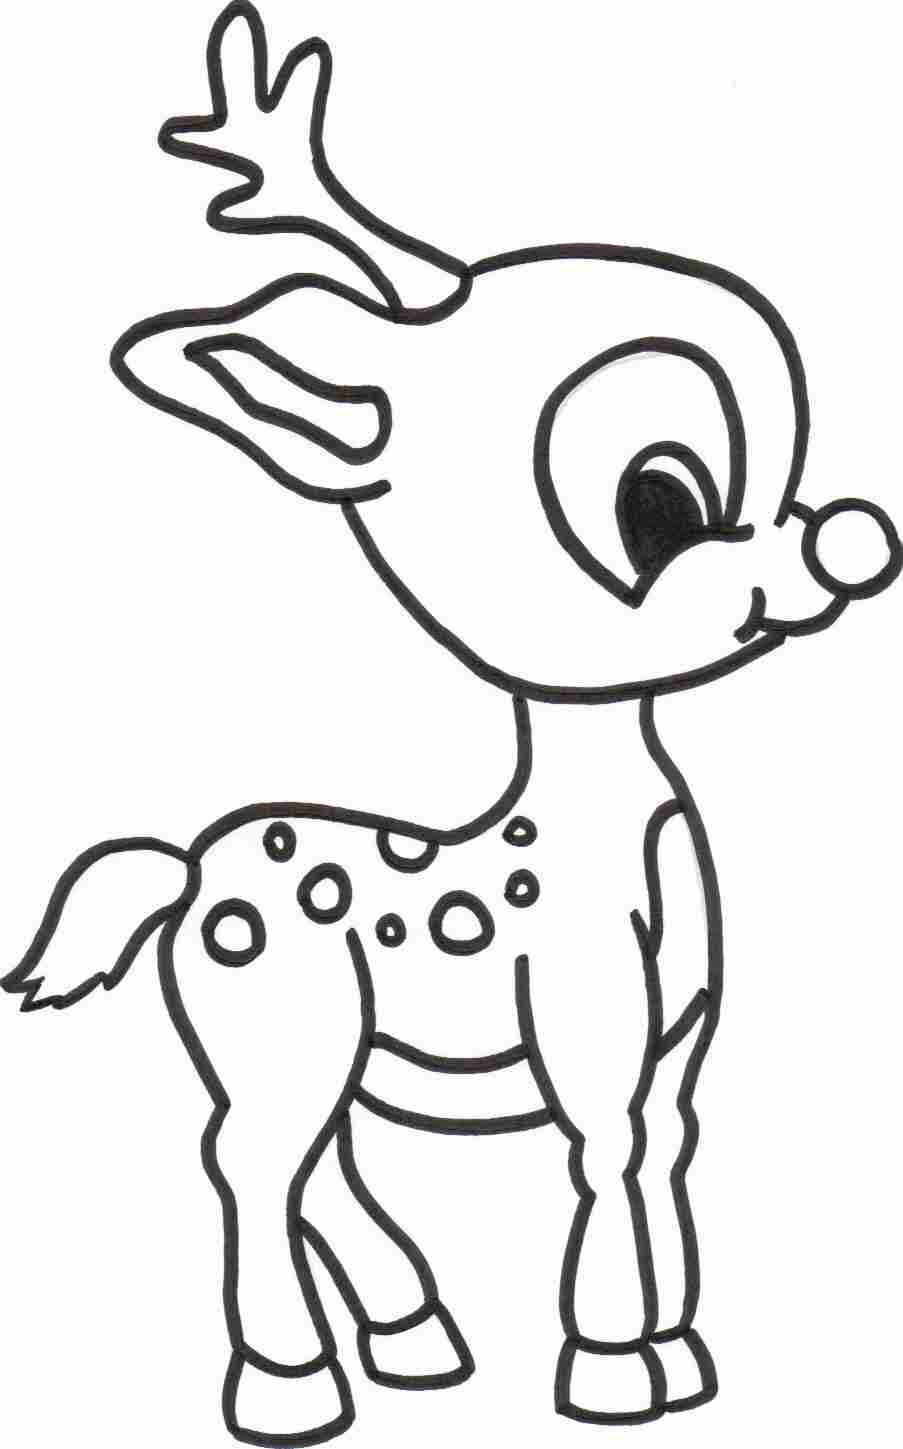 Rudolph Reindeer Coloring Pages - GetColoringPages.com | 1449x903